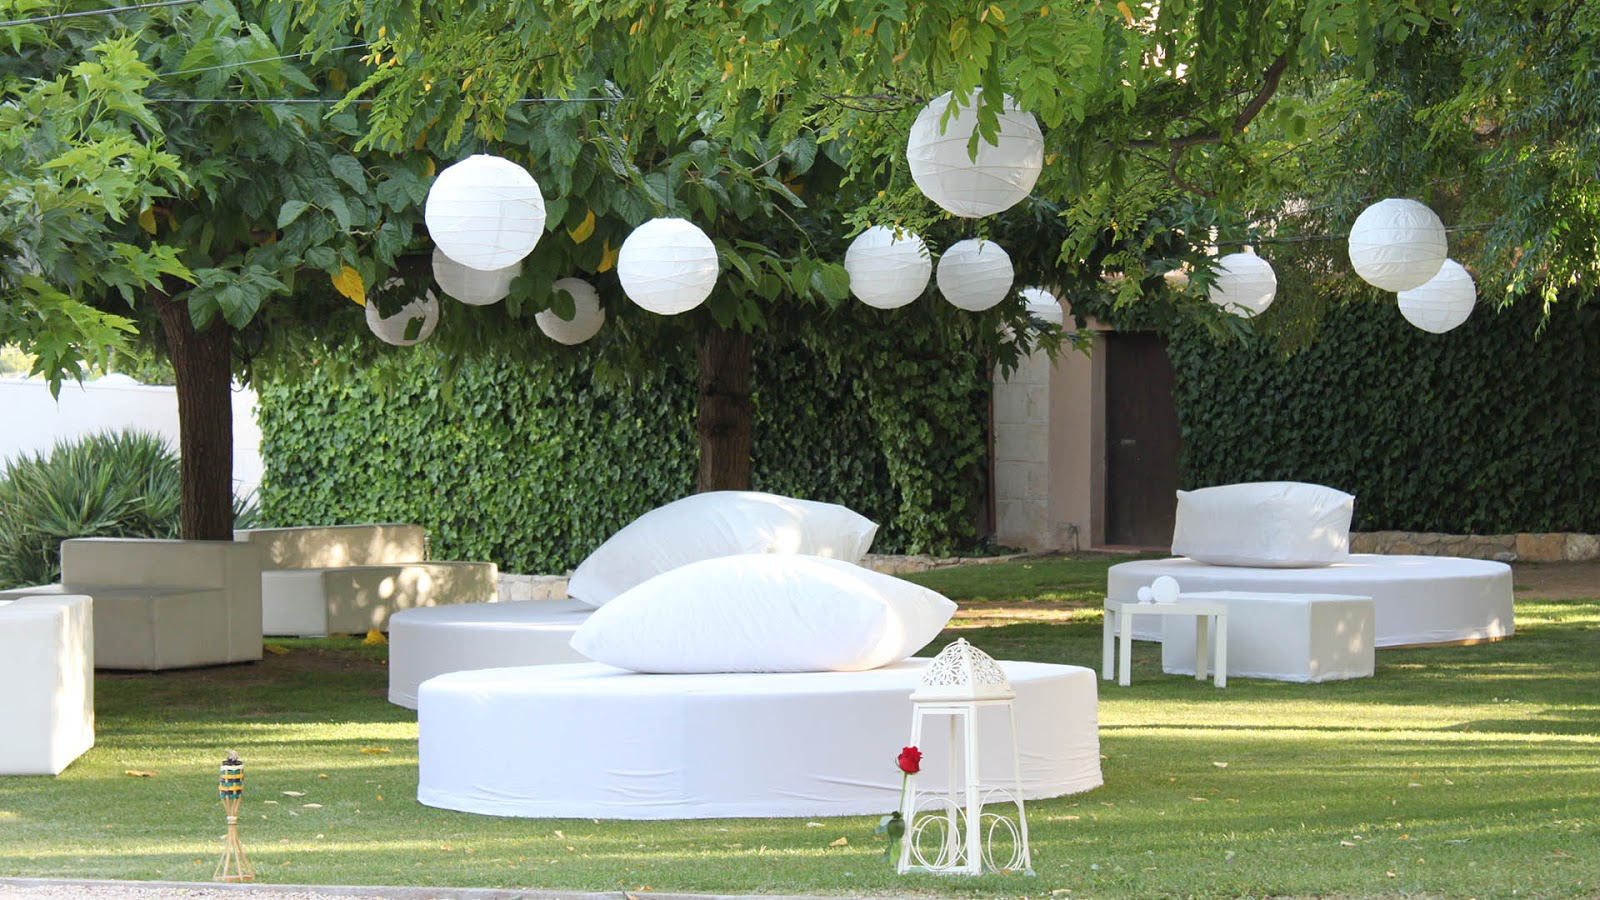 Zona Chill Out Jardin Eres Eventos Zona Chill Out Para El Jardín